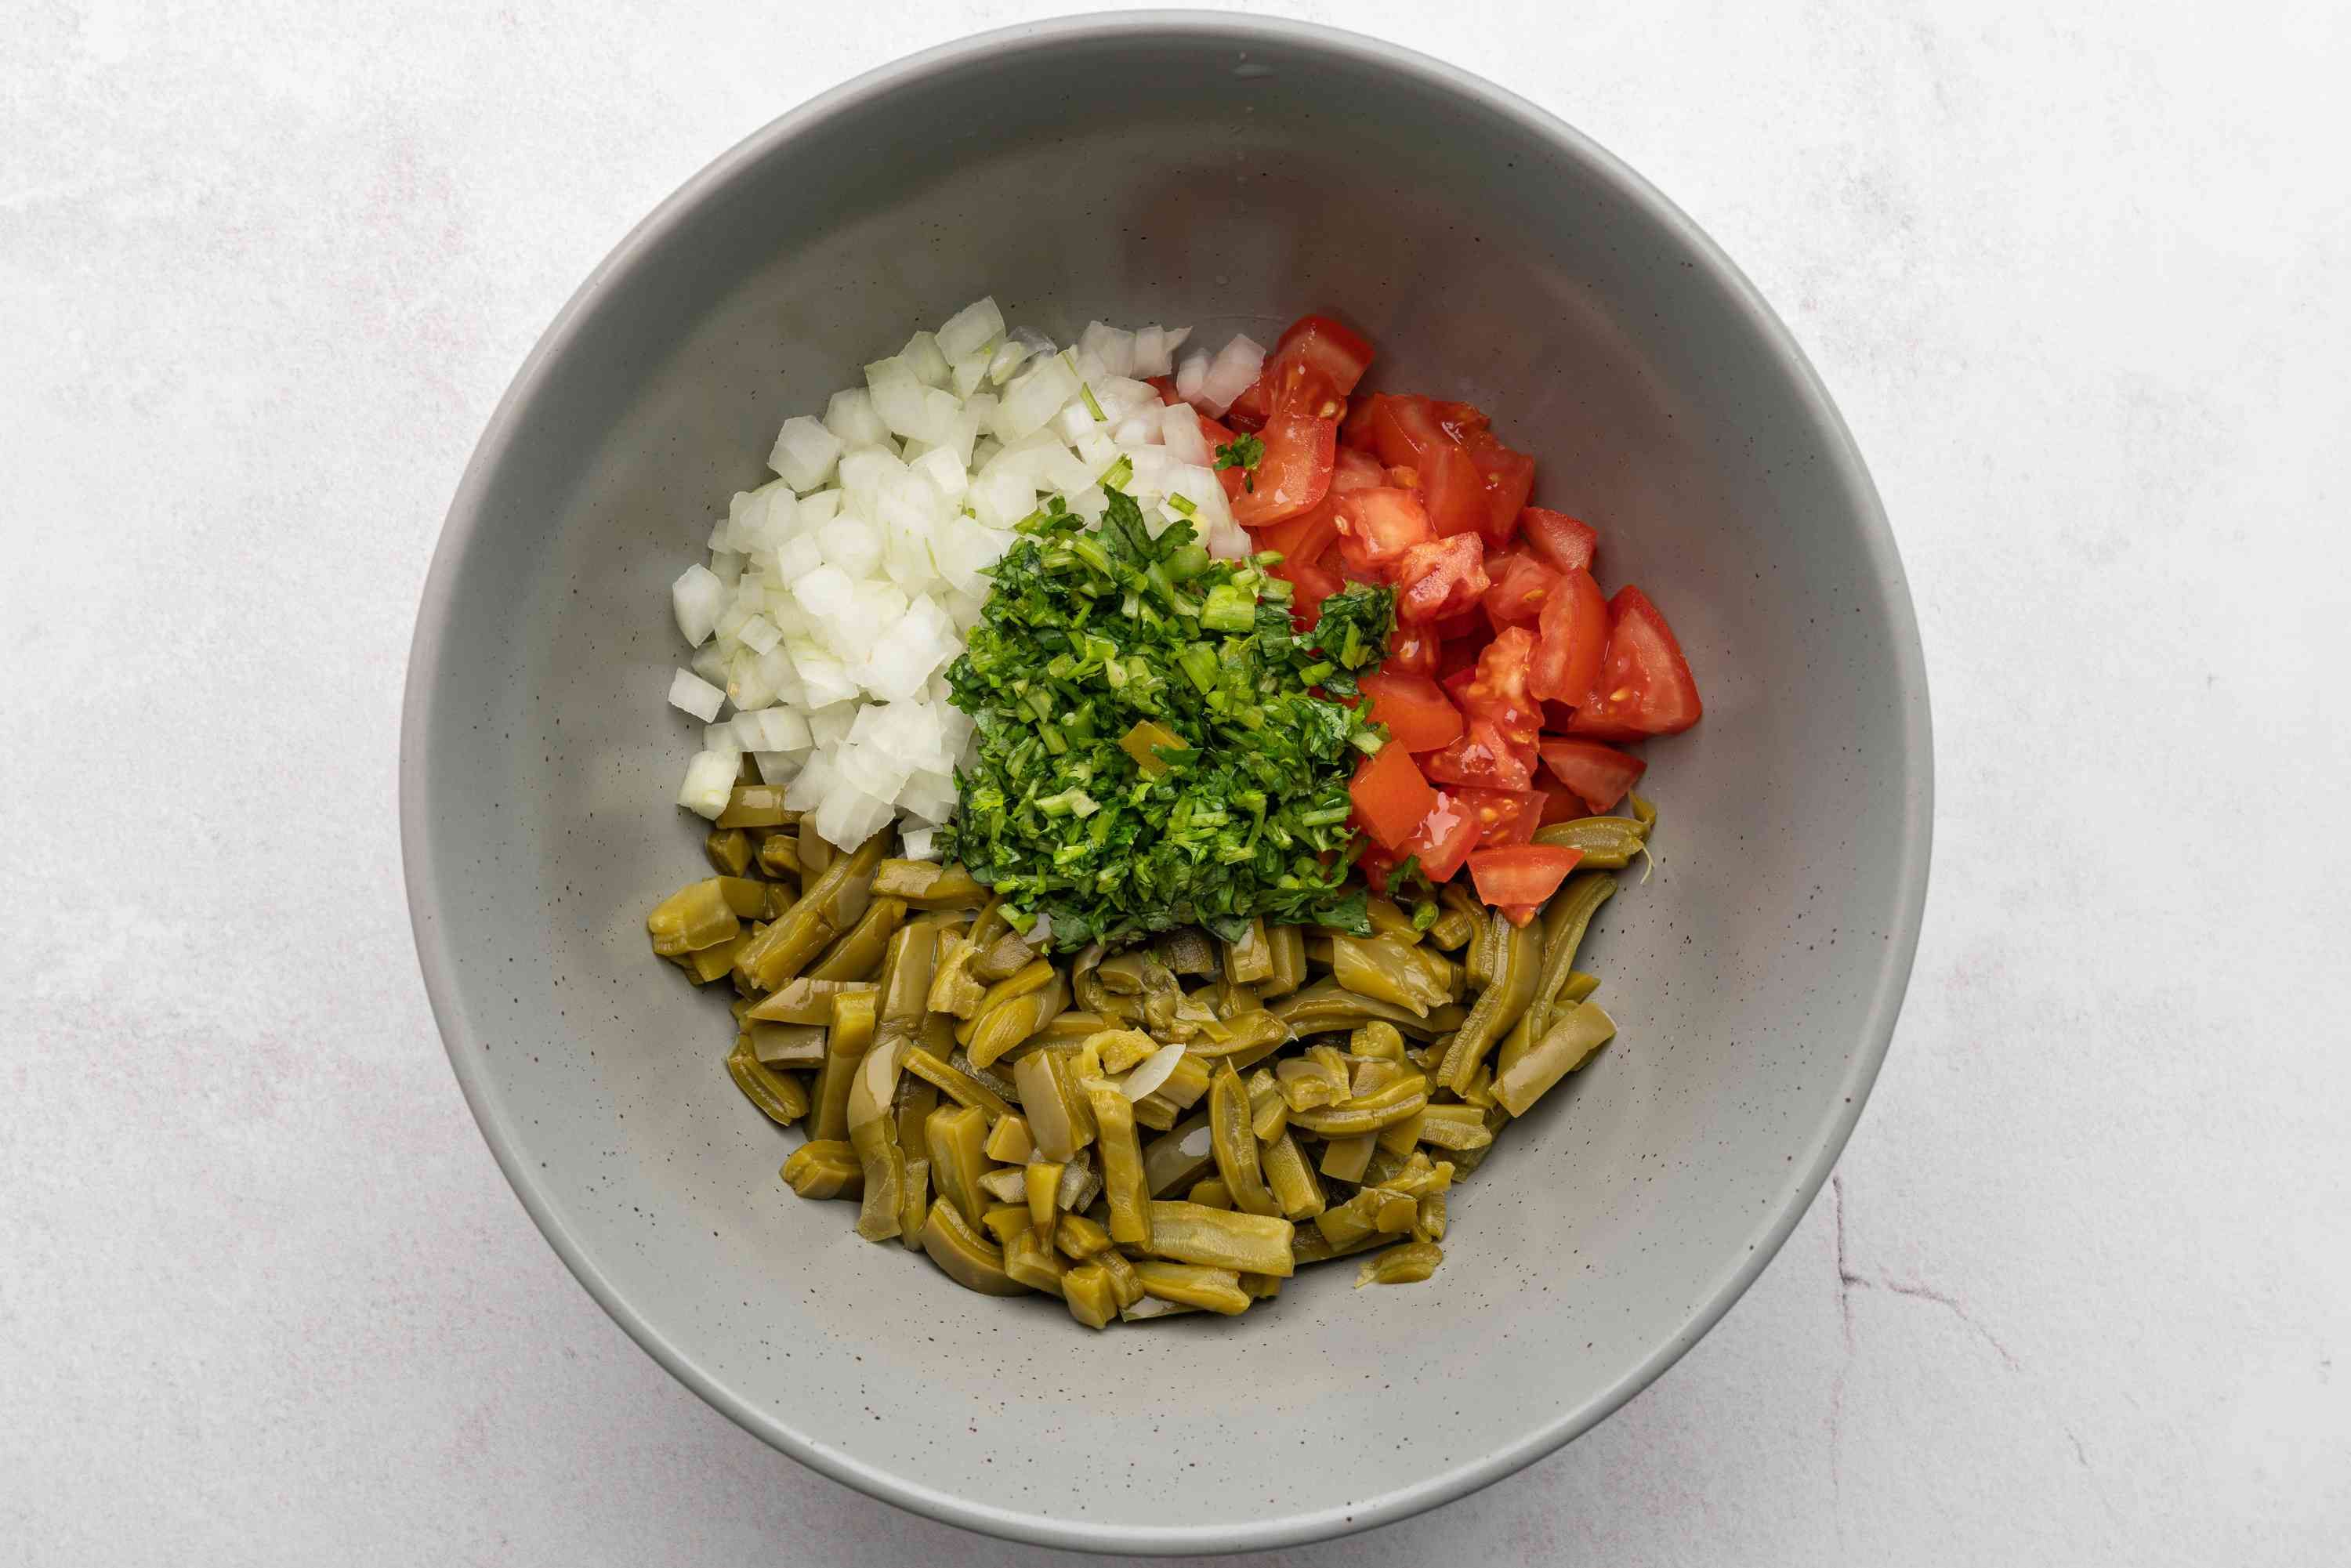 toss together tomato, onion, nopales, and cilantro in a bowl